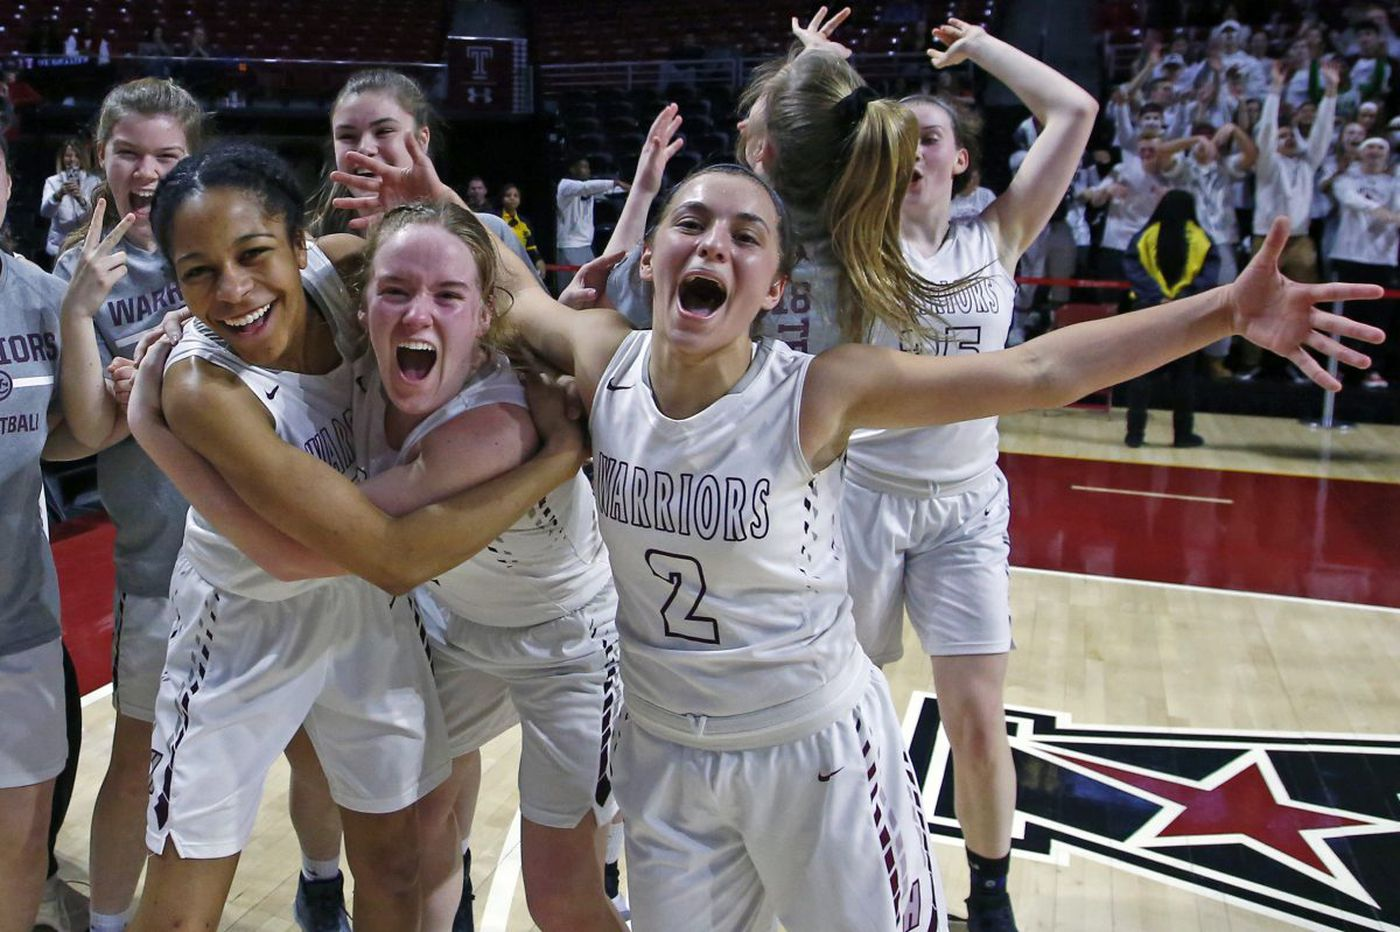 Saturday's Pa. roundup: Souderton girls' survives in triple overtime; Lincoln boys' knocks off PCL champs